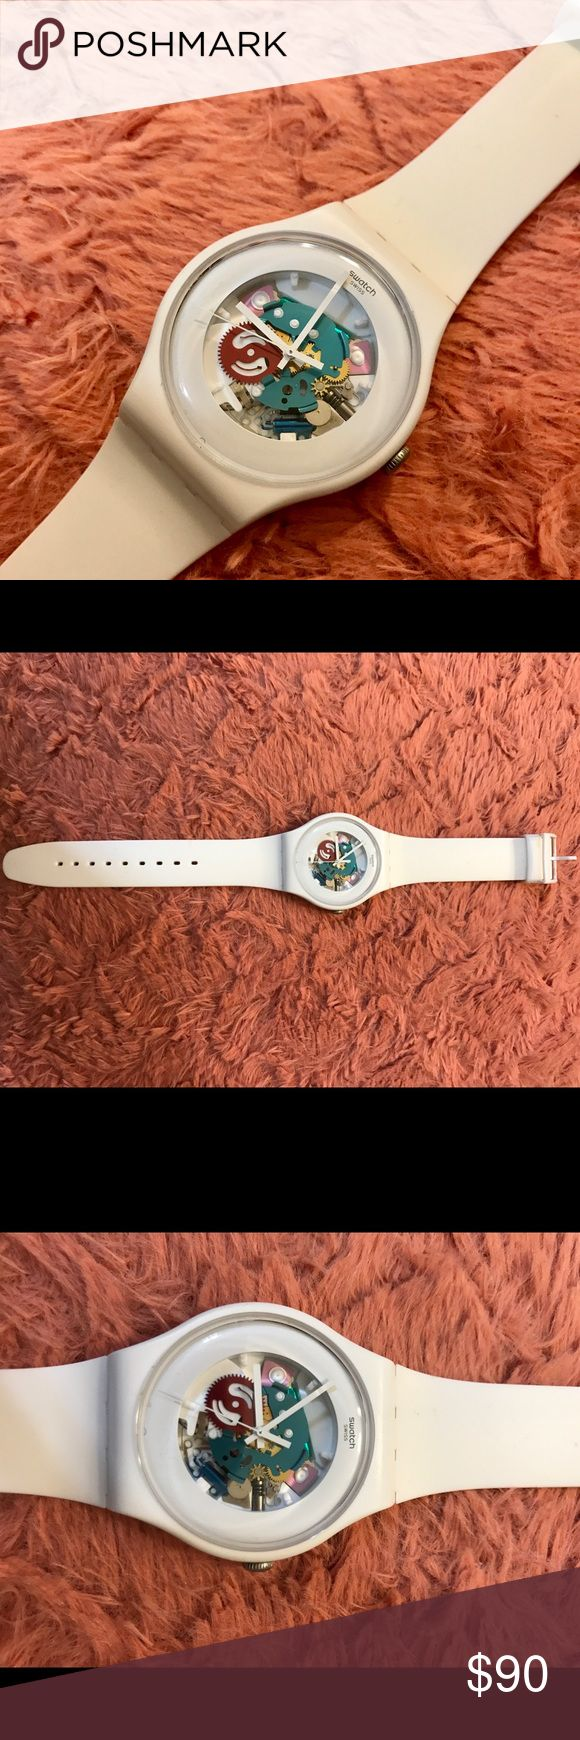 Swiss White Swatch Ladies Watch Swatch model #SR1130SW, in excellent condition. no scratches. battery is working perfectly. No box included. from pet free and smoke free home. FEEL FREE TO PLACE AN OFFER. Swatch Accessories Watches